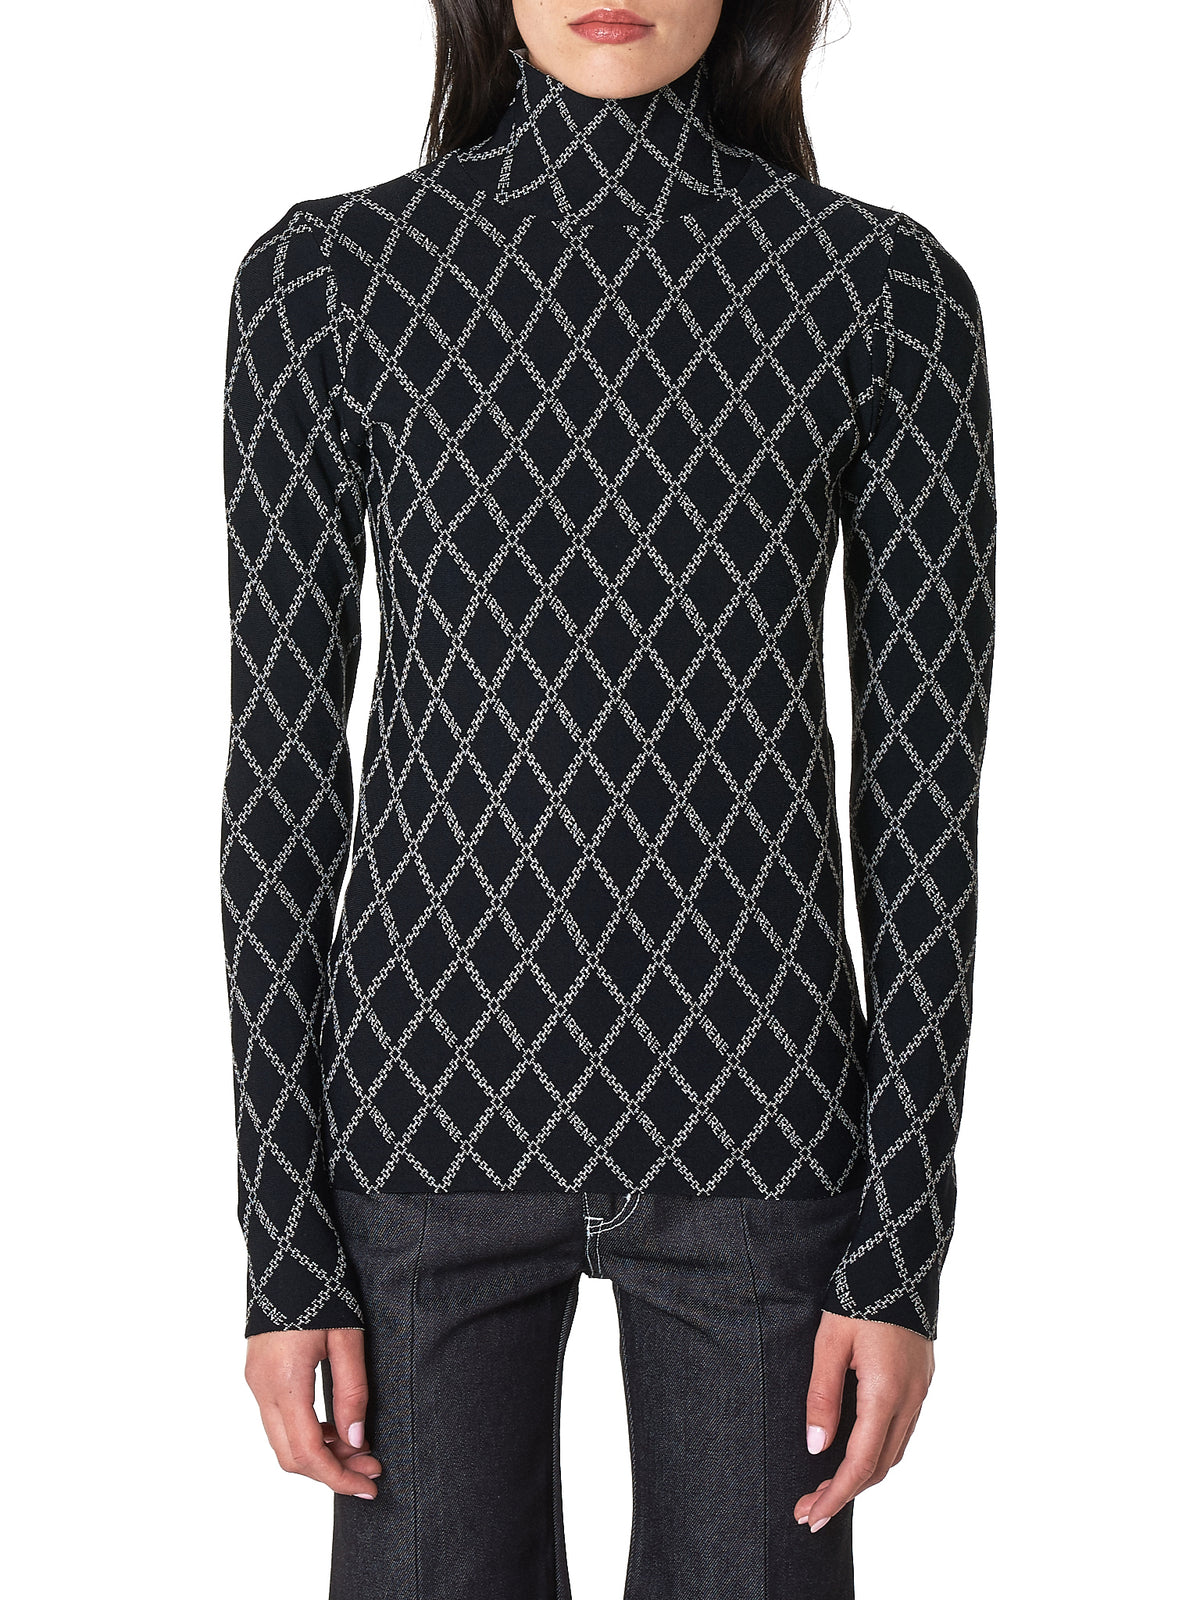 Diamond Logo Turtleneck Top (20A81003-BLACK)